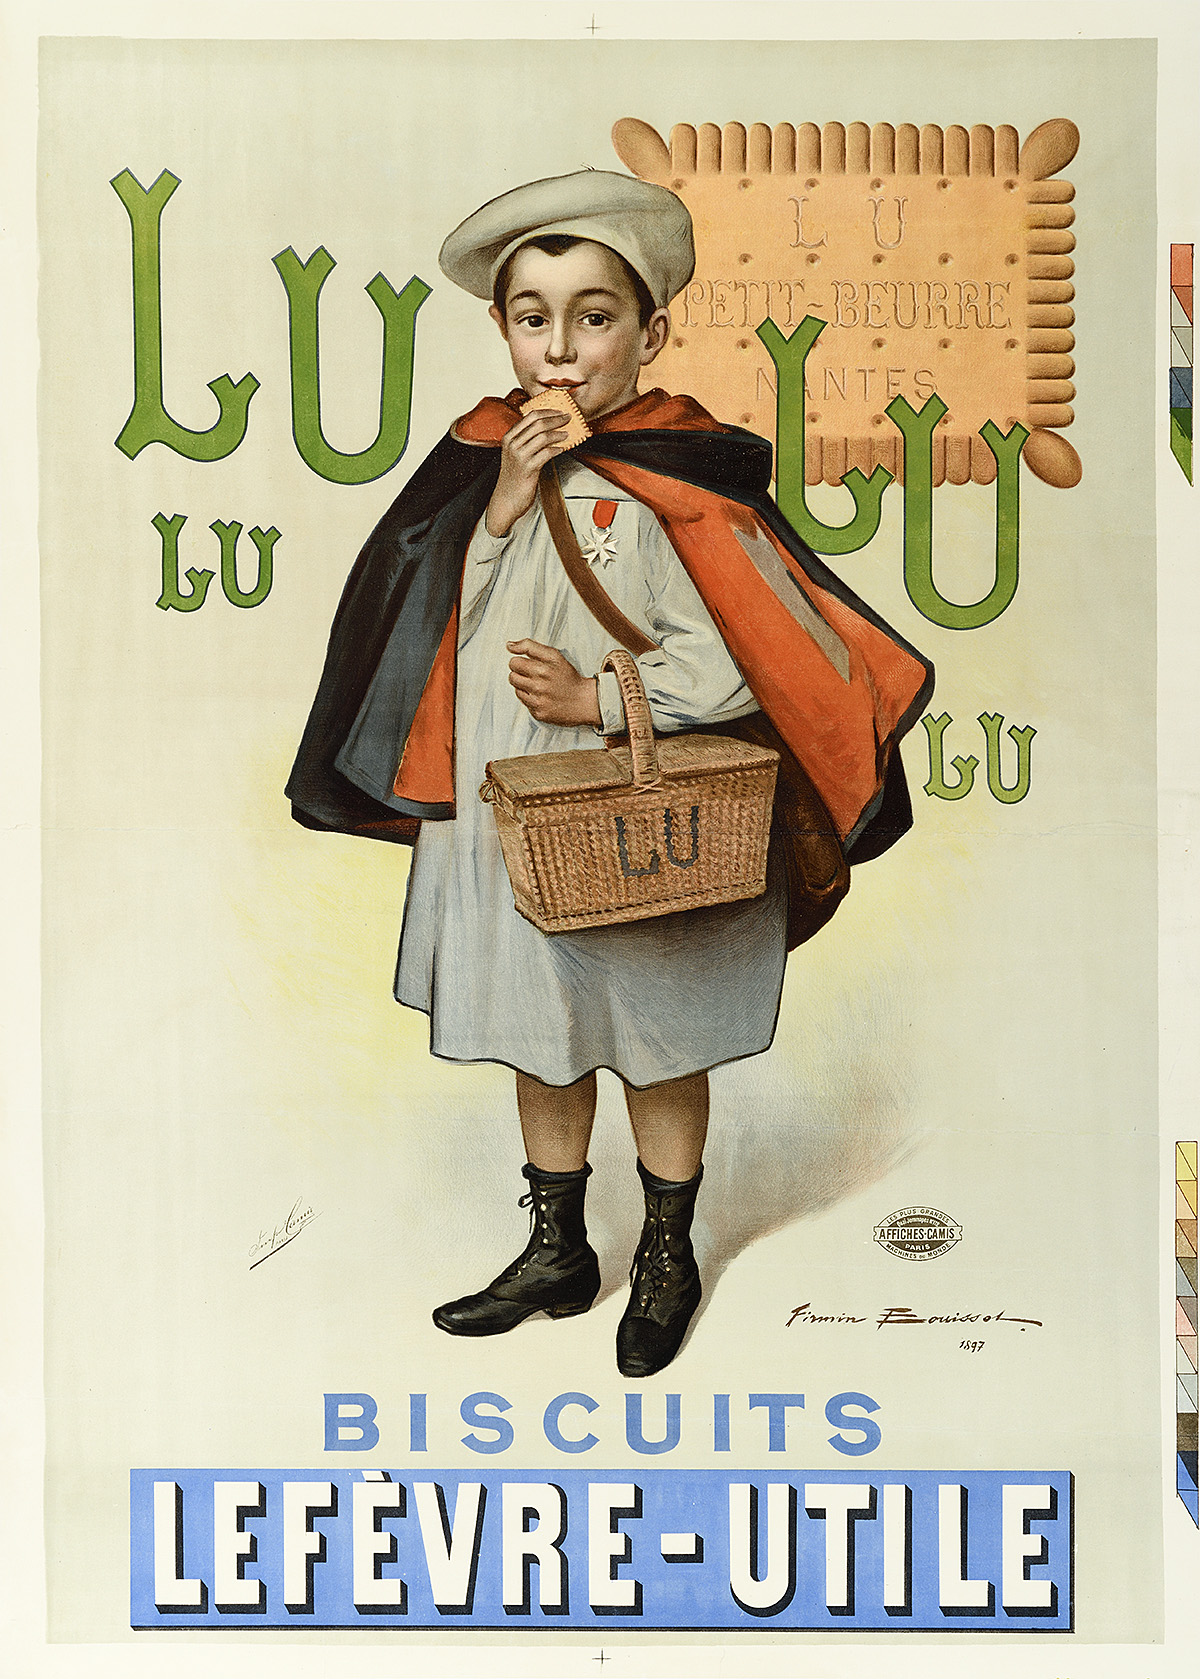 illustrational poster of a schoolboy holding a basket and eating a biscuit